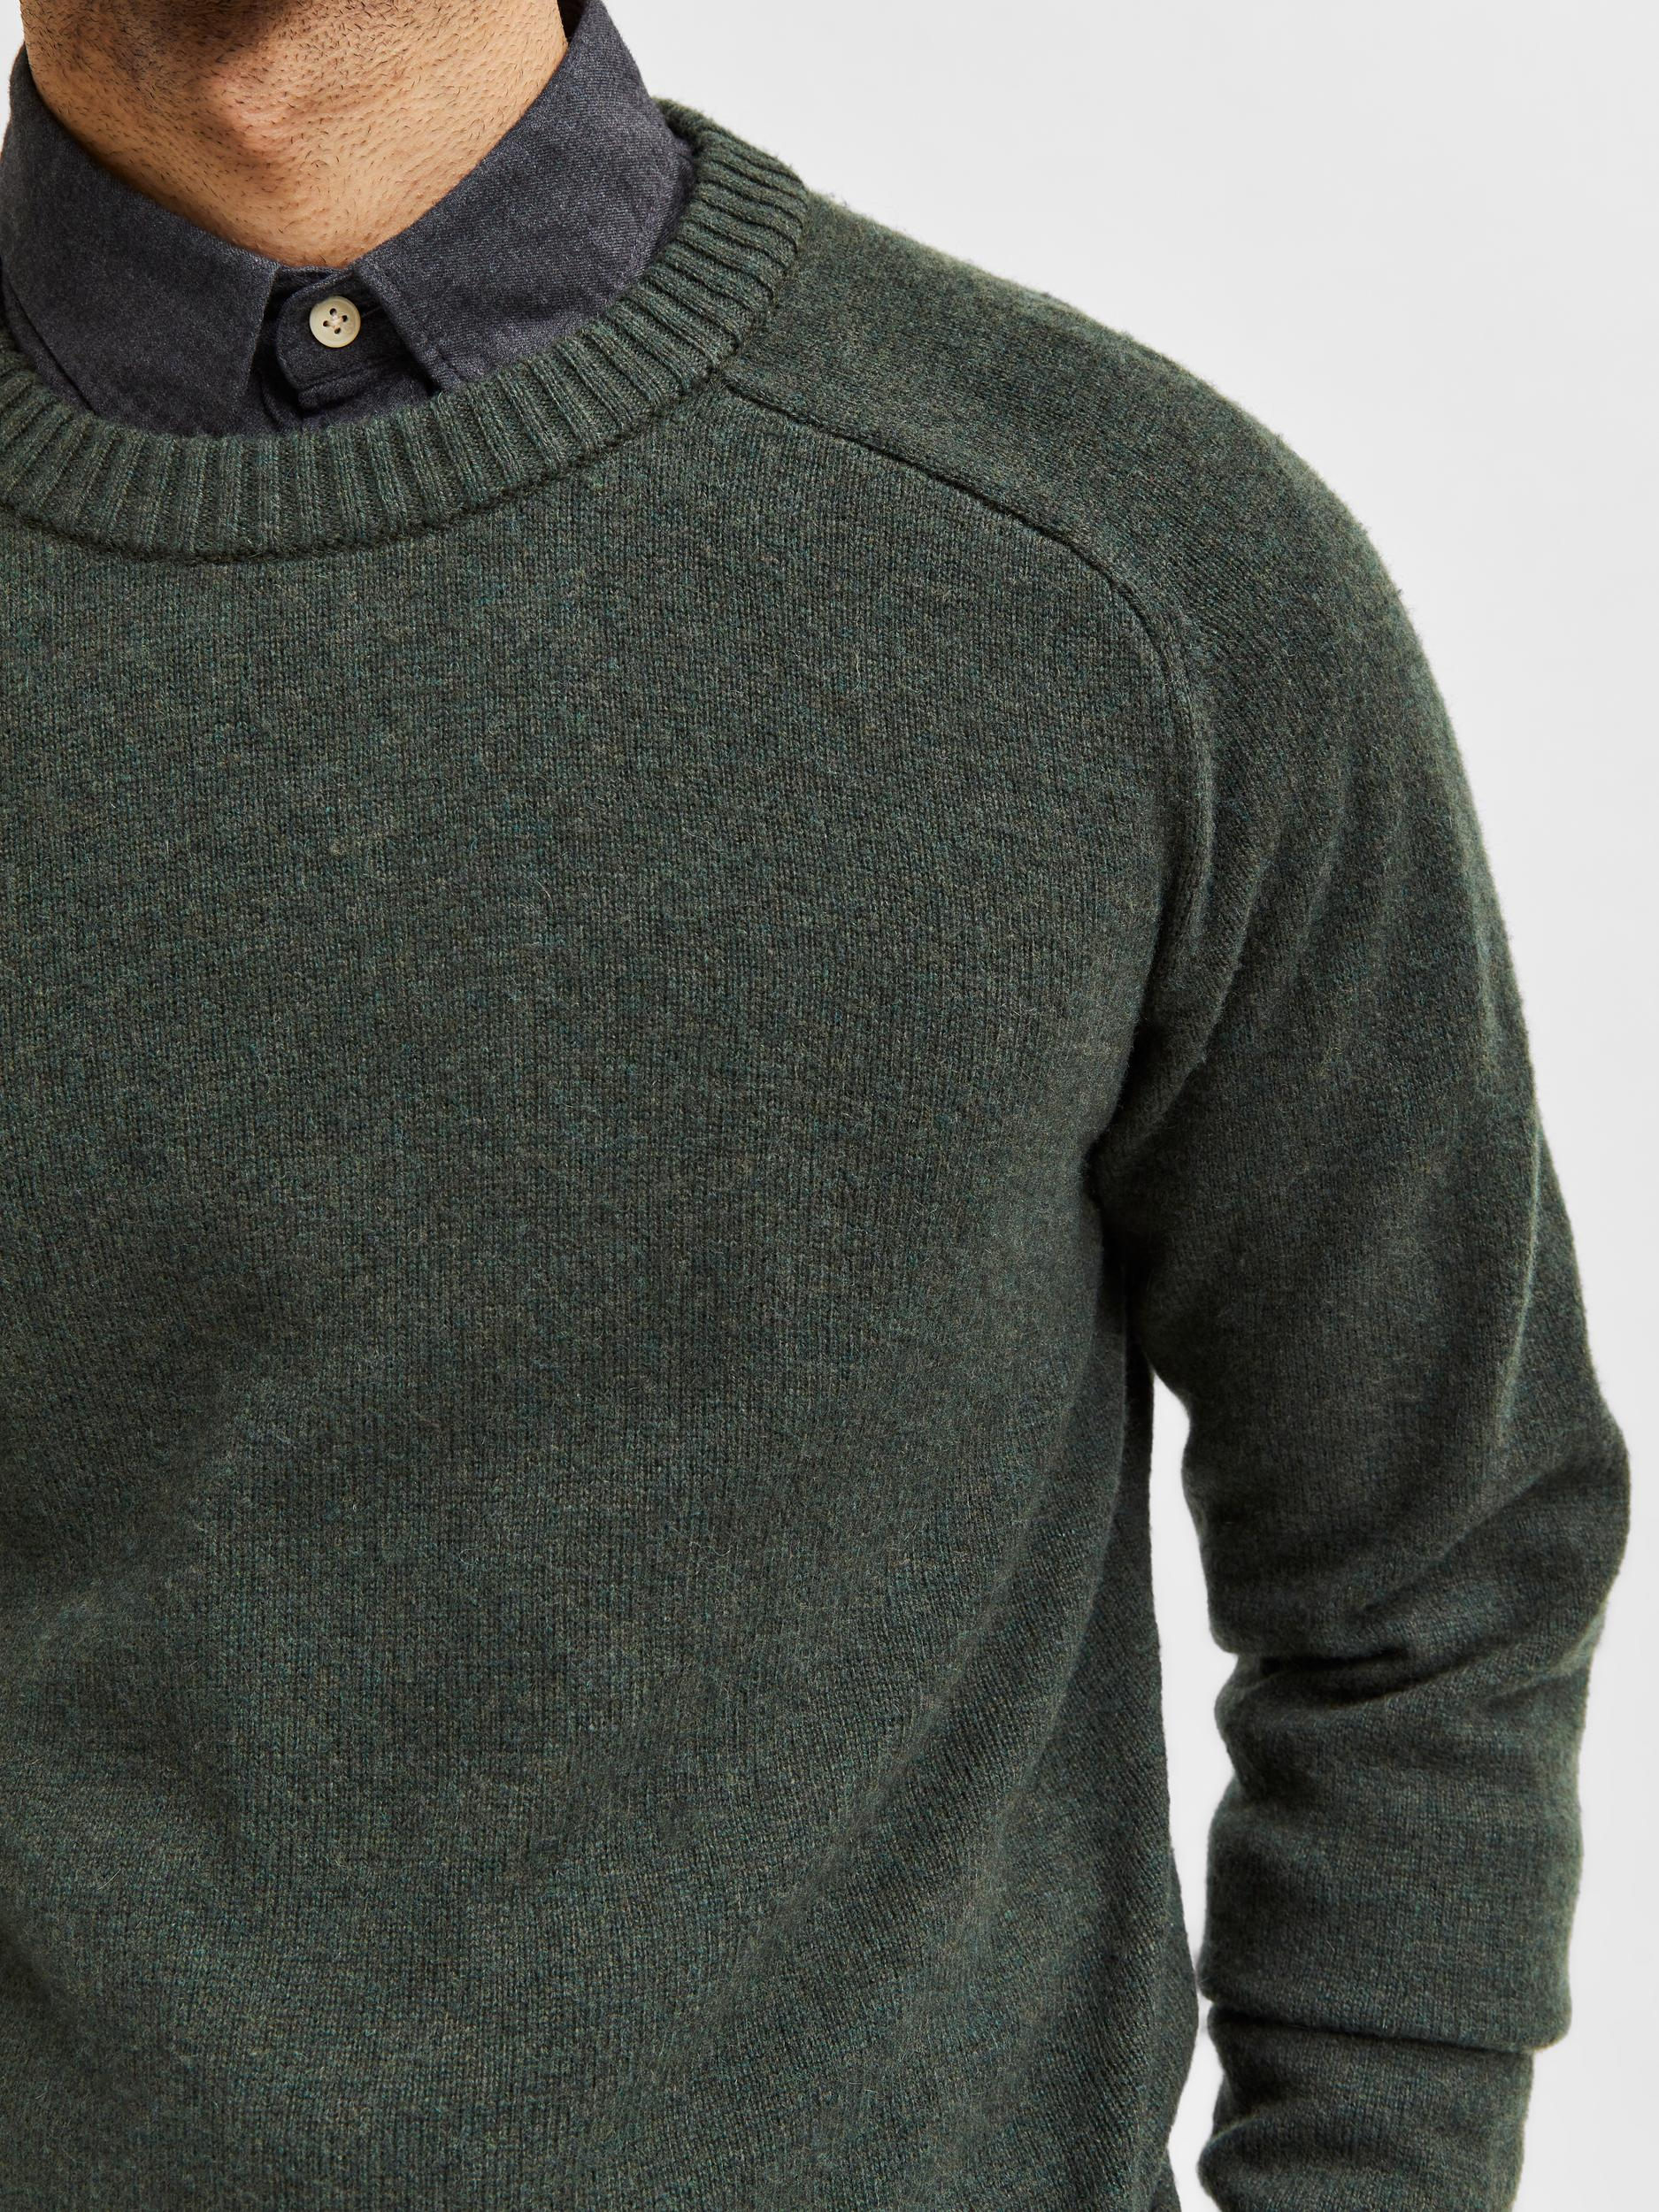 Selected Homme Newcoban LS trøje, forest night, xx-large